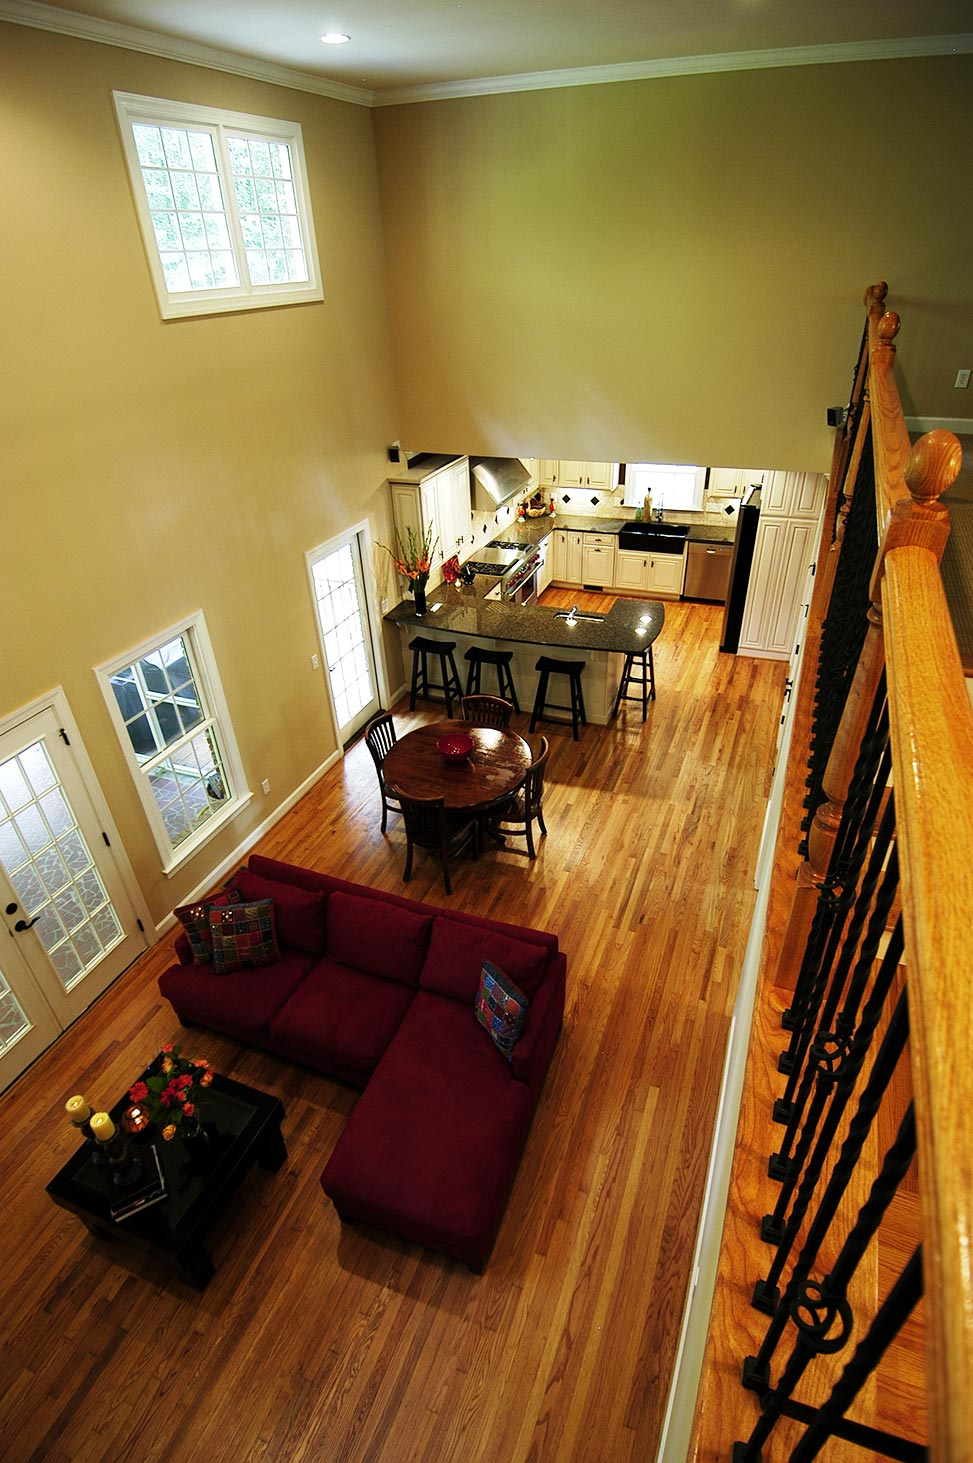 View of living room and kitchen from second floor balcony